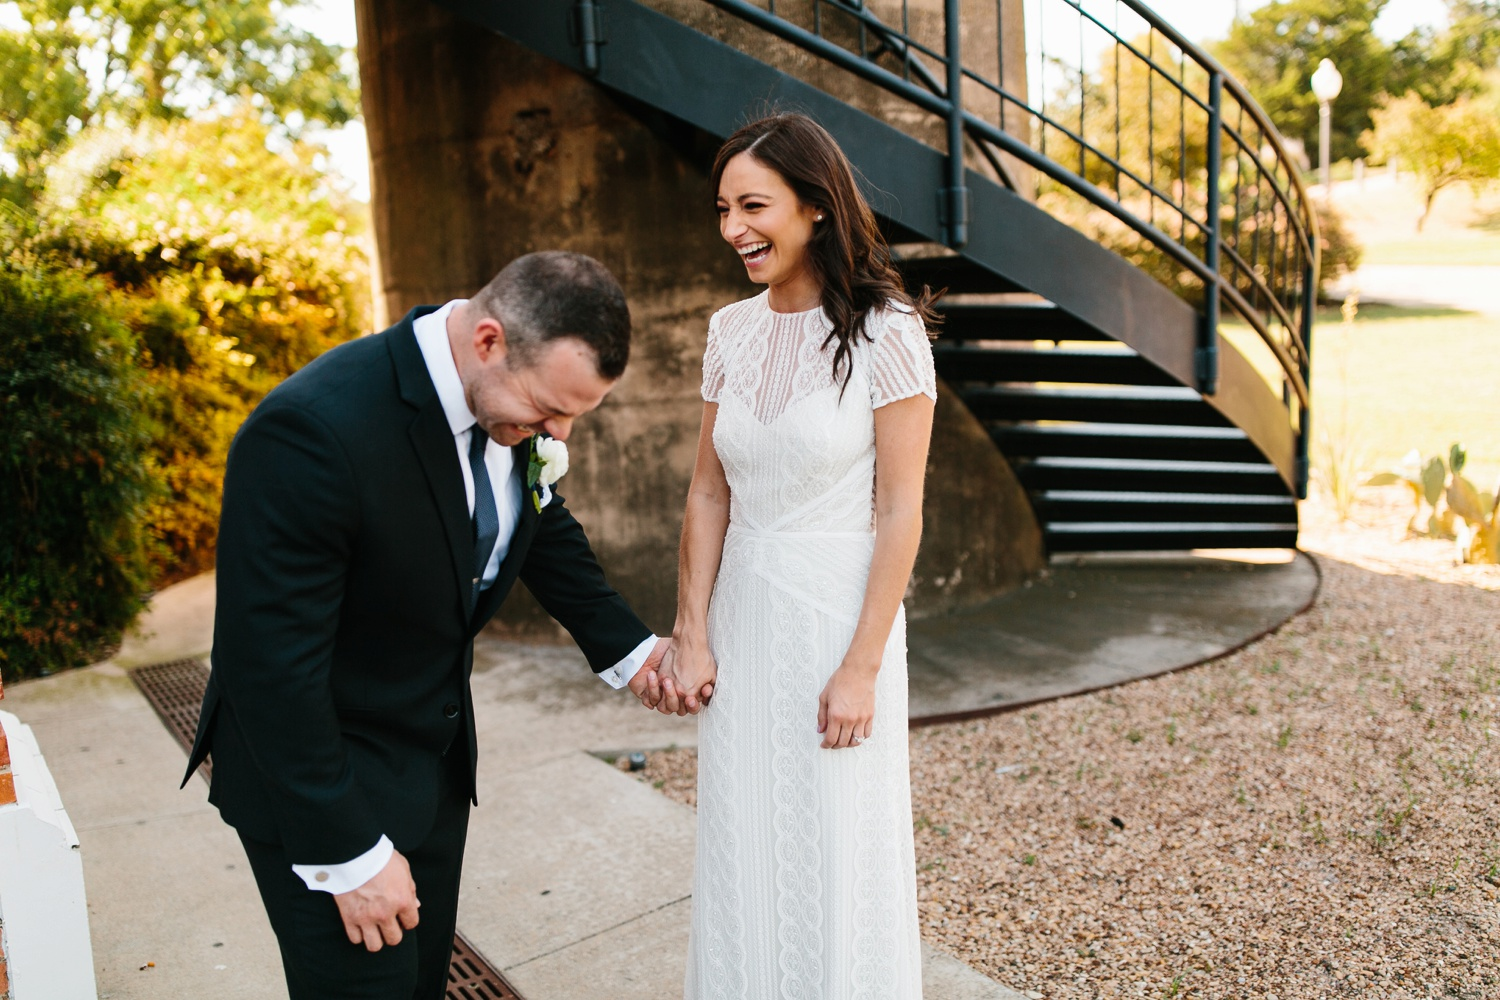 Kadee + Tyler | a raw, emotional wedding at the Filter Building on White Rock Lake in Dallas, TX by North Texas Wedding Photographer, Rachel Meagan Photography 090